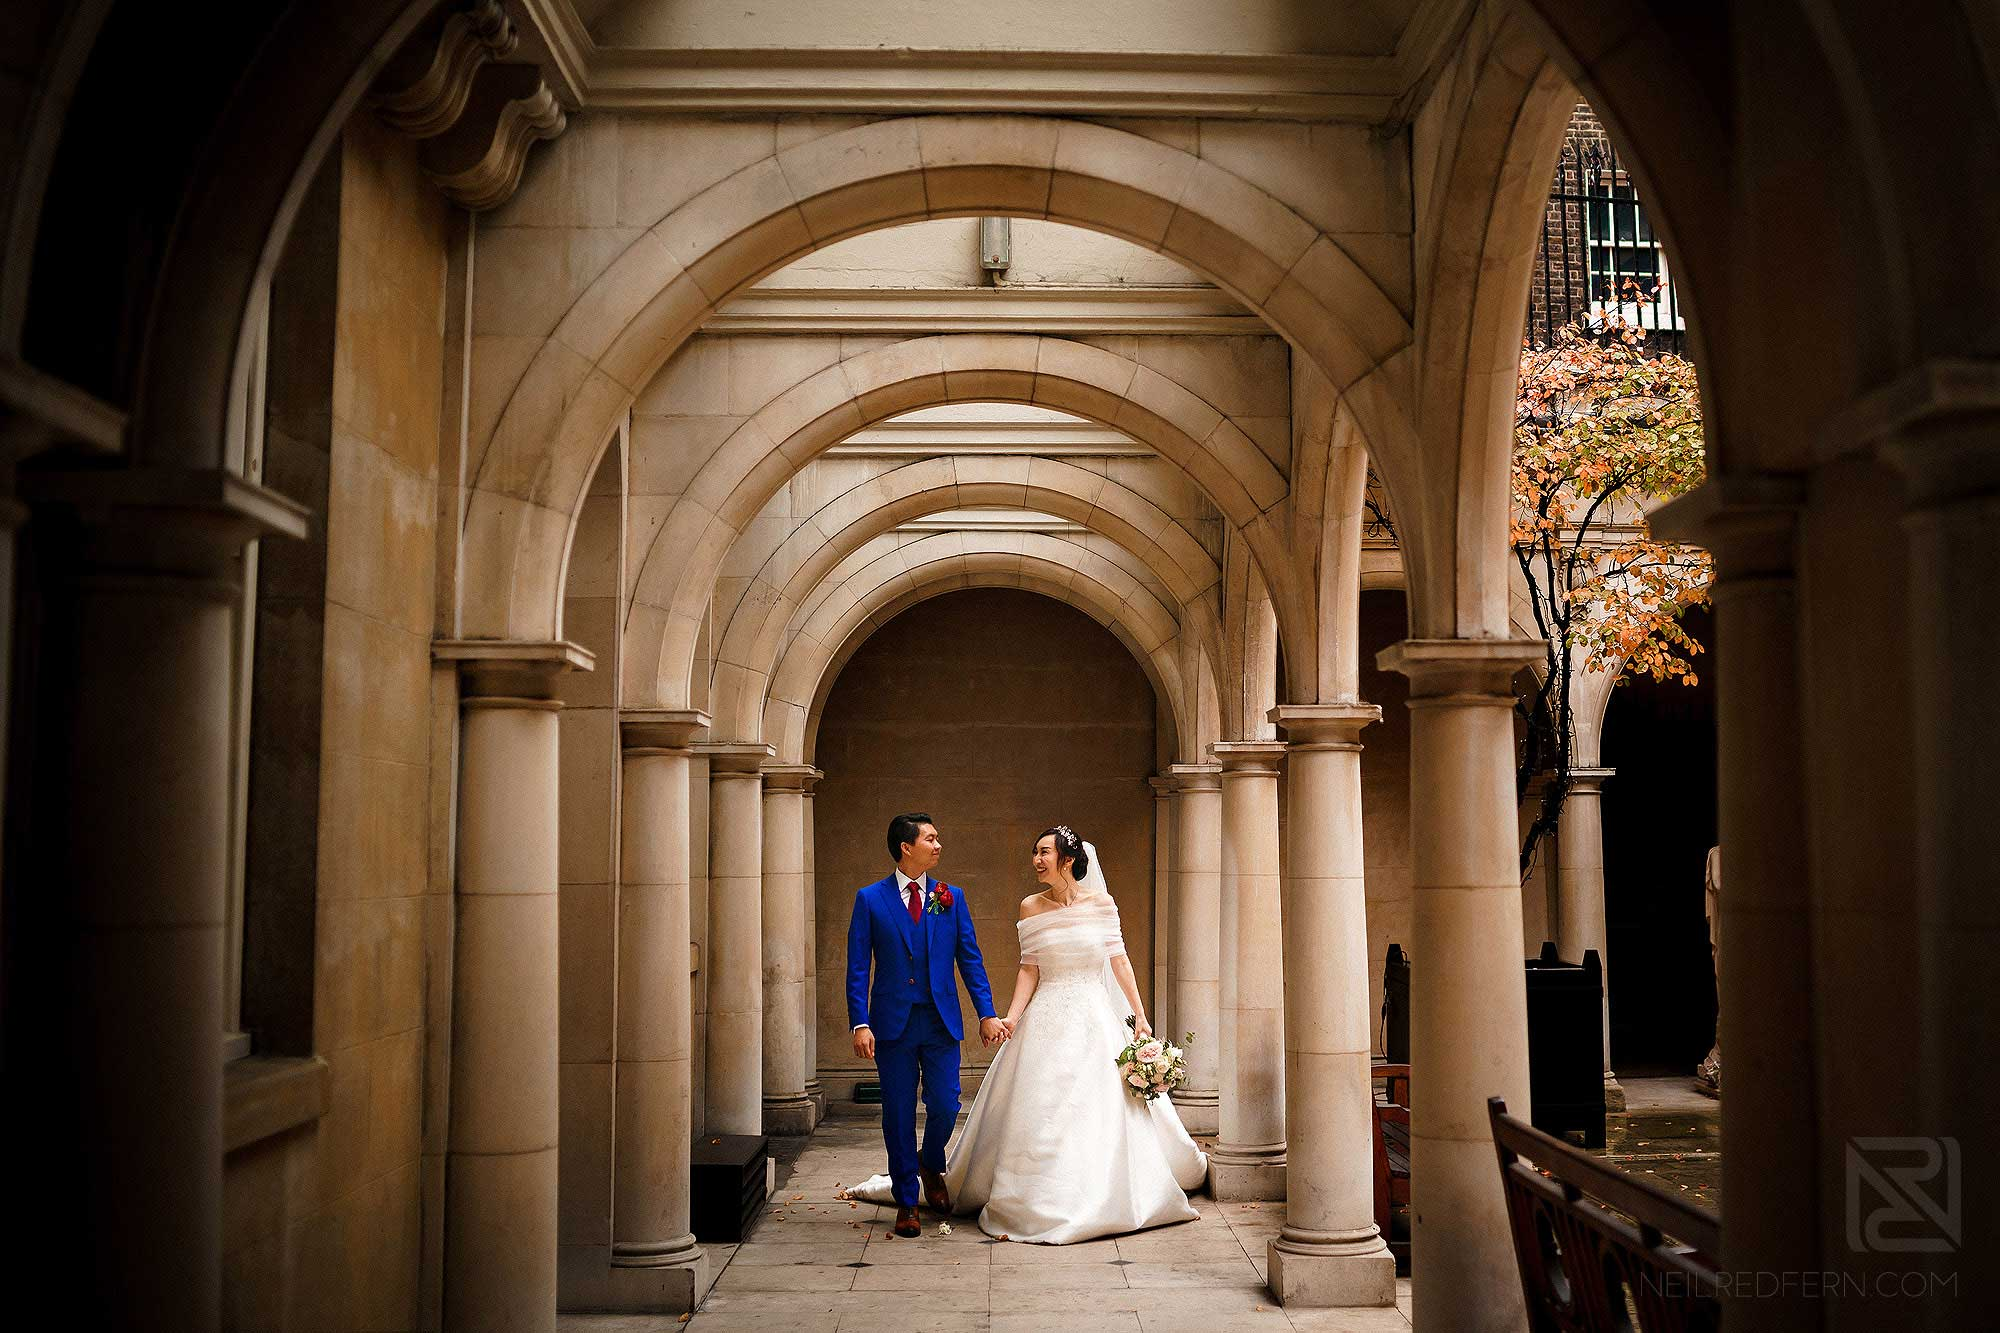 bride and groom walking together in Skinner's Hall in London